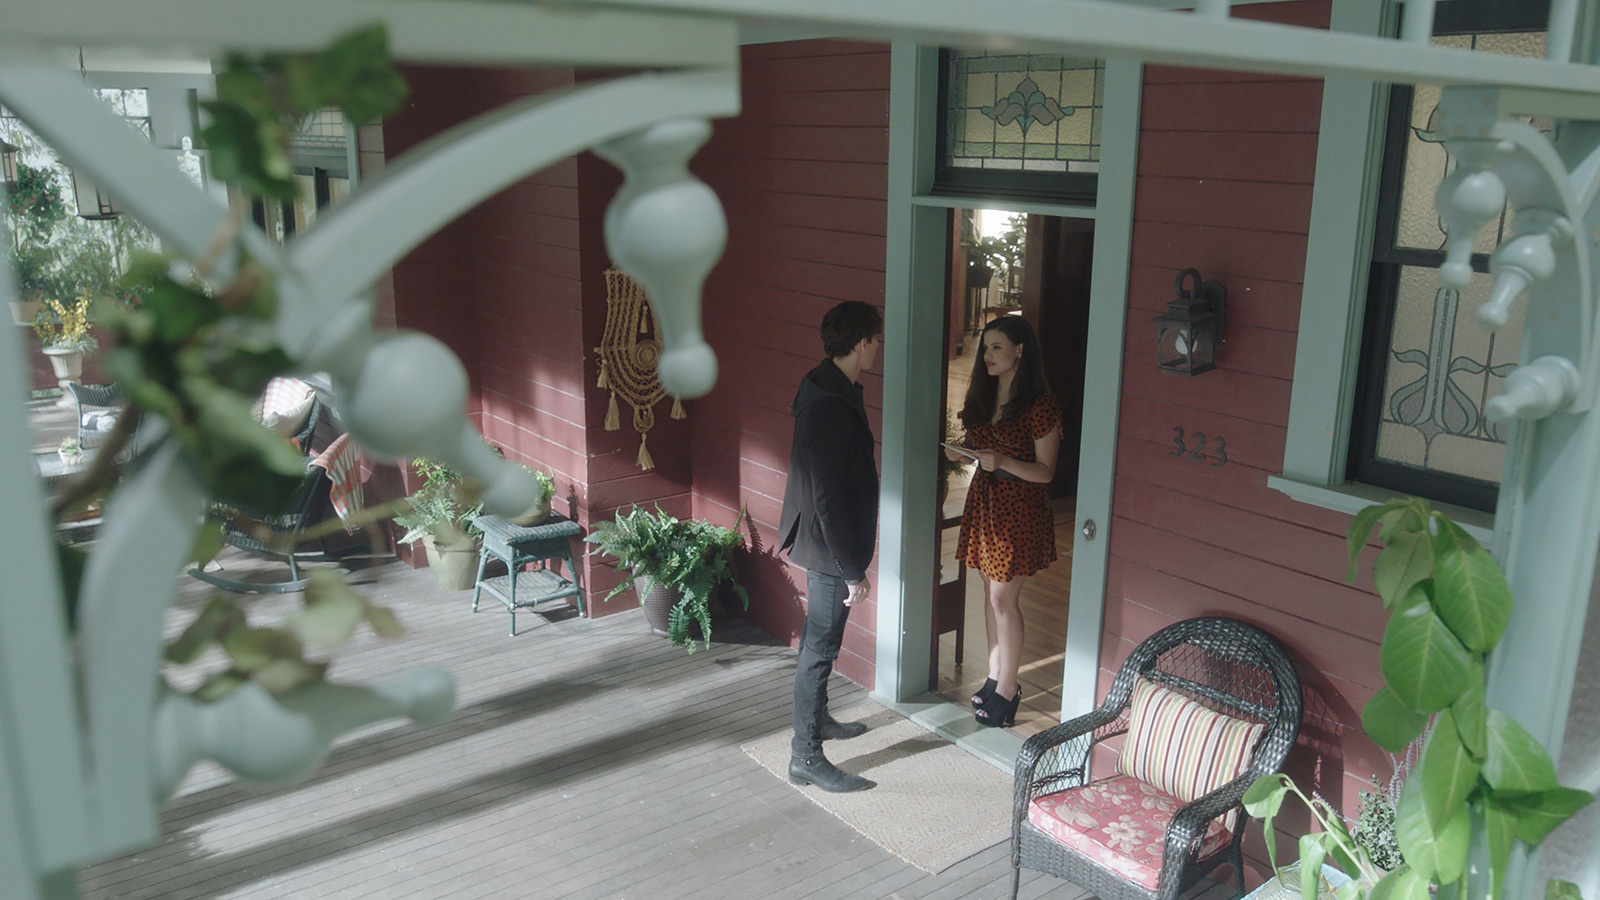 CHARMED: S1 - VERA MANOR - FRONT DECK - SCREEN STILL